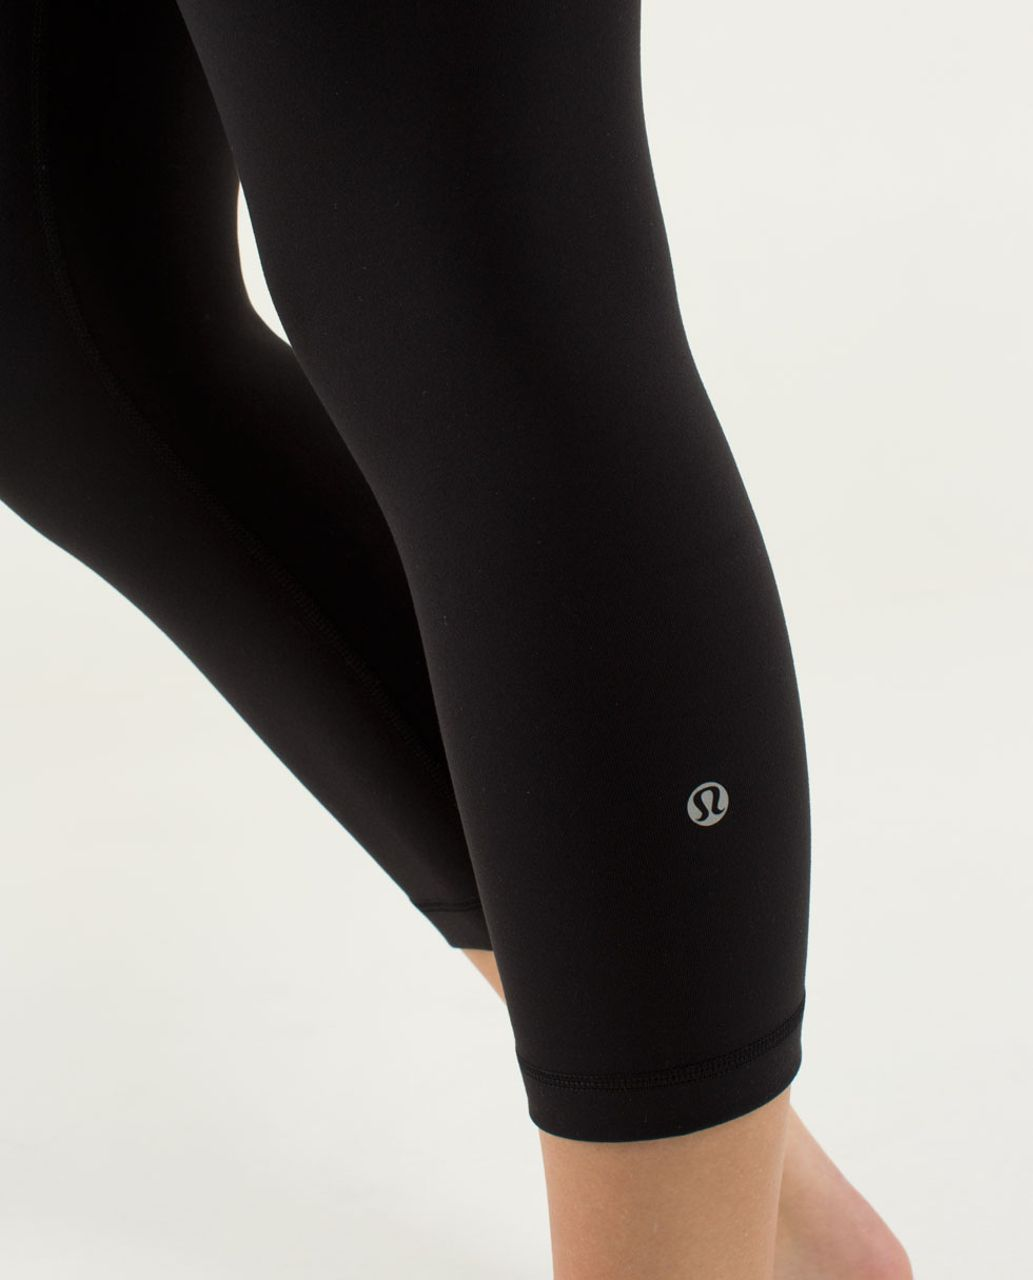 Lululemon Wunder Under Crop *Full-On Luon - Black / Quilt Winter 13-09